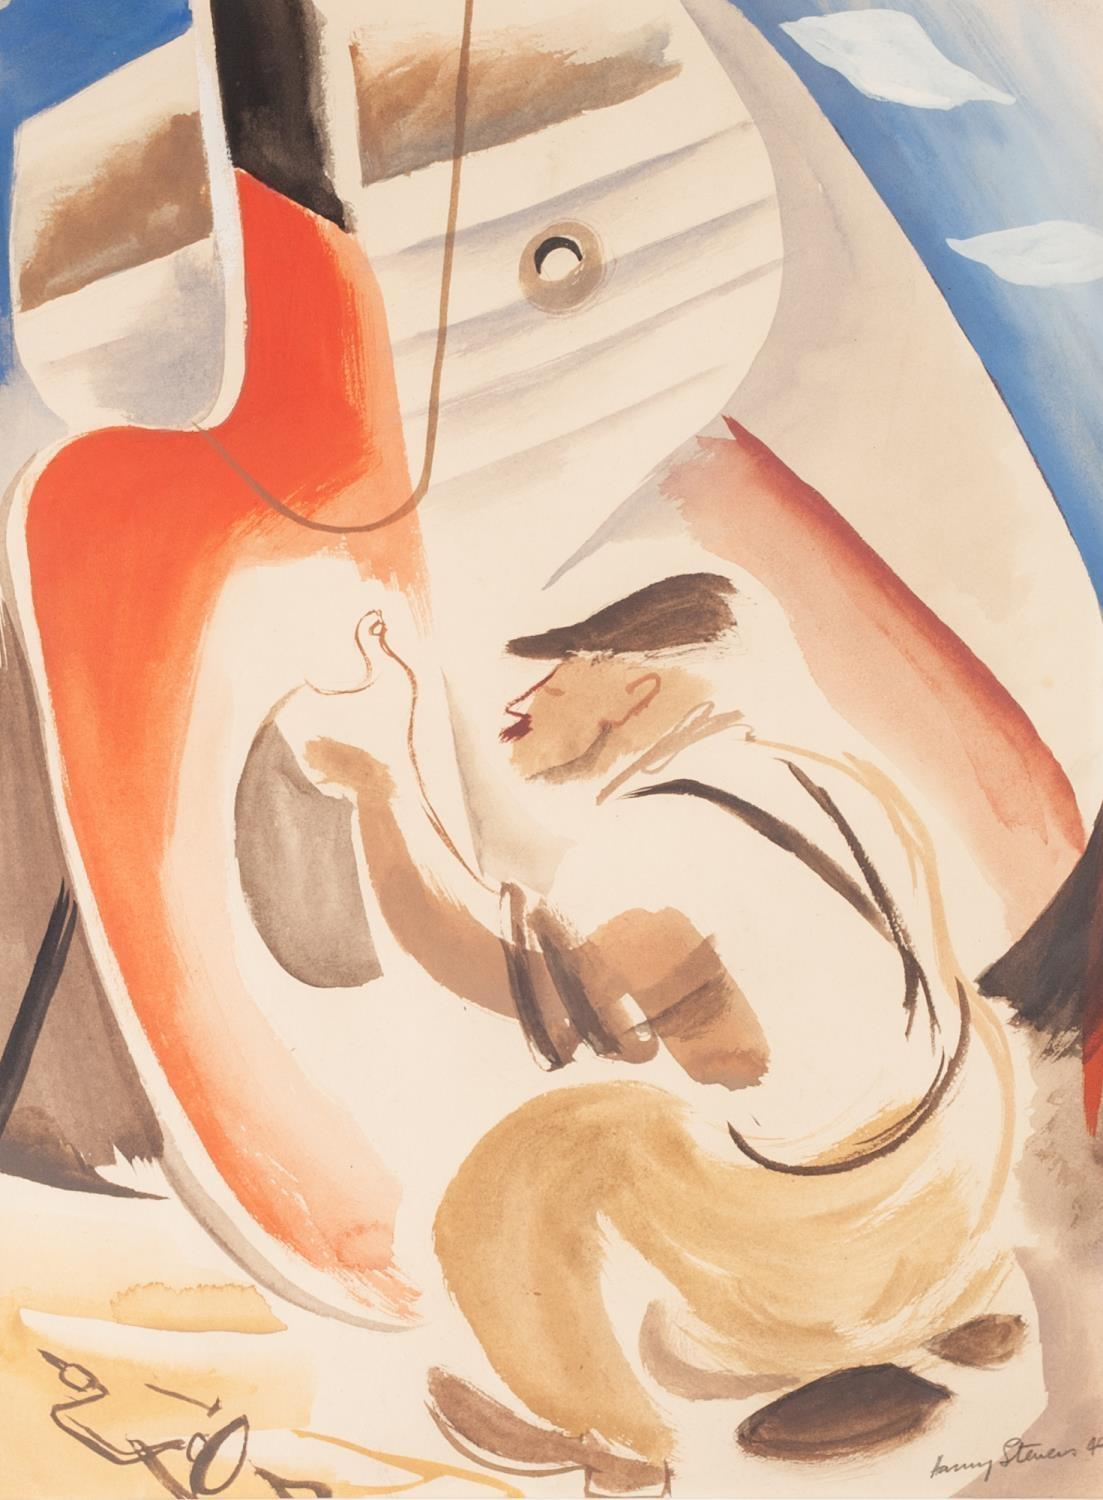 Lot 177 - HARRY STEVENS (1919-2008) WATERCOLOUR DRAWING 'The Broken Rudder' Signed and dated (19)49, titled to